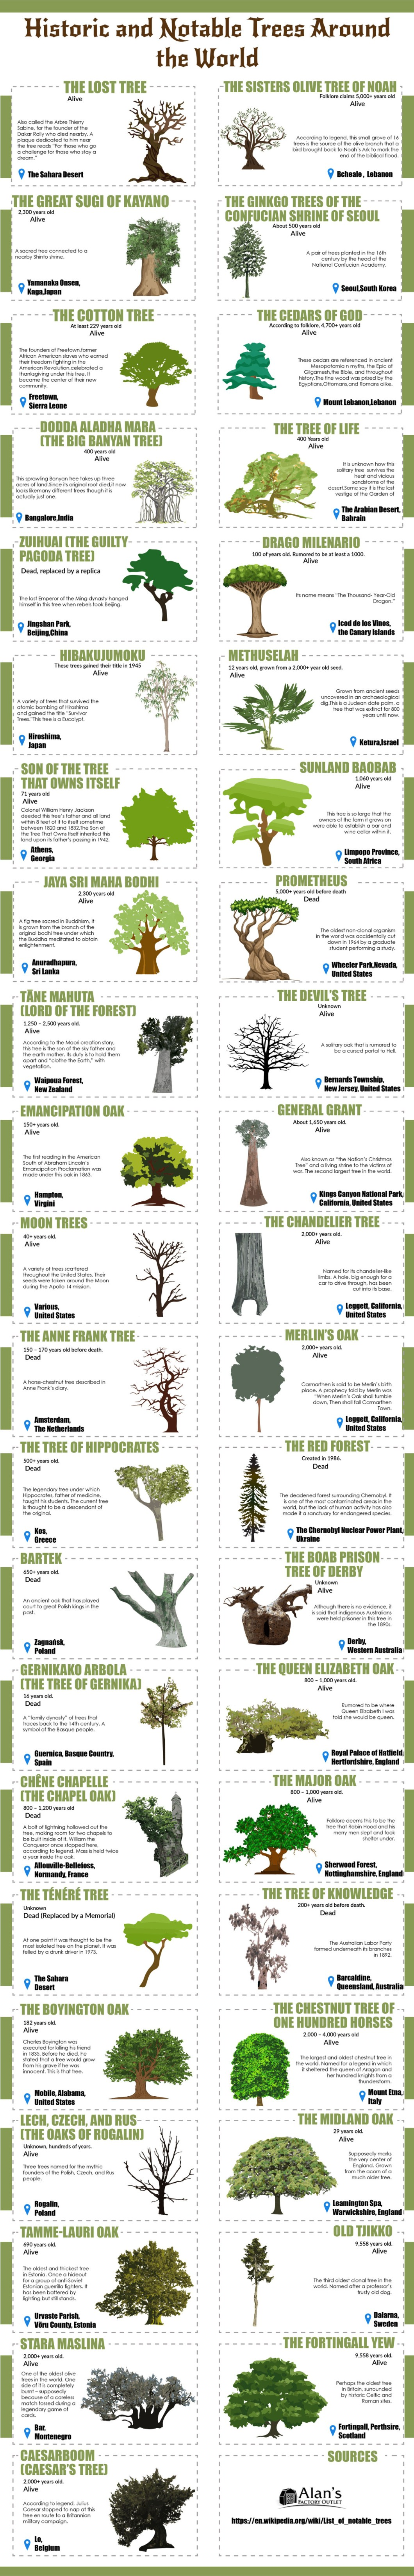 Trees that Witnessed History: Stories of Ancient and Notable Trees Around the World - Infographic